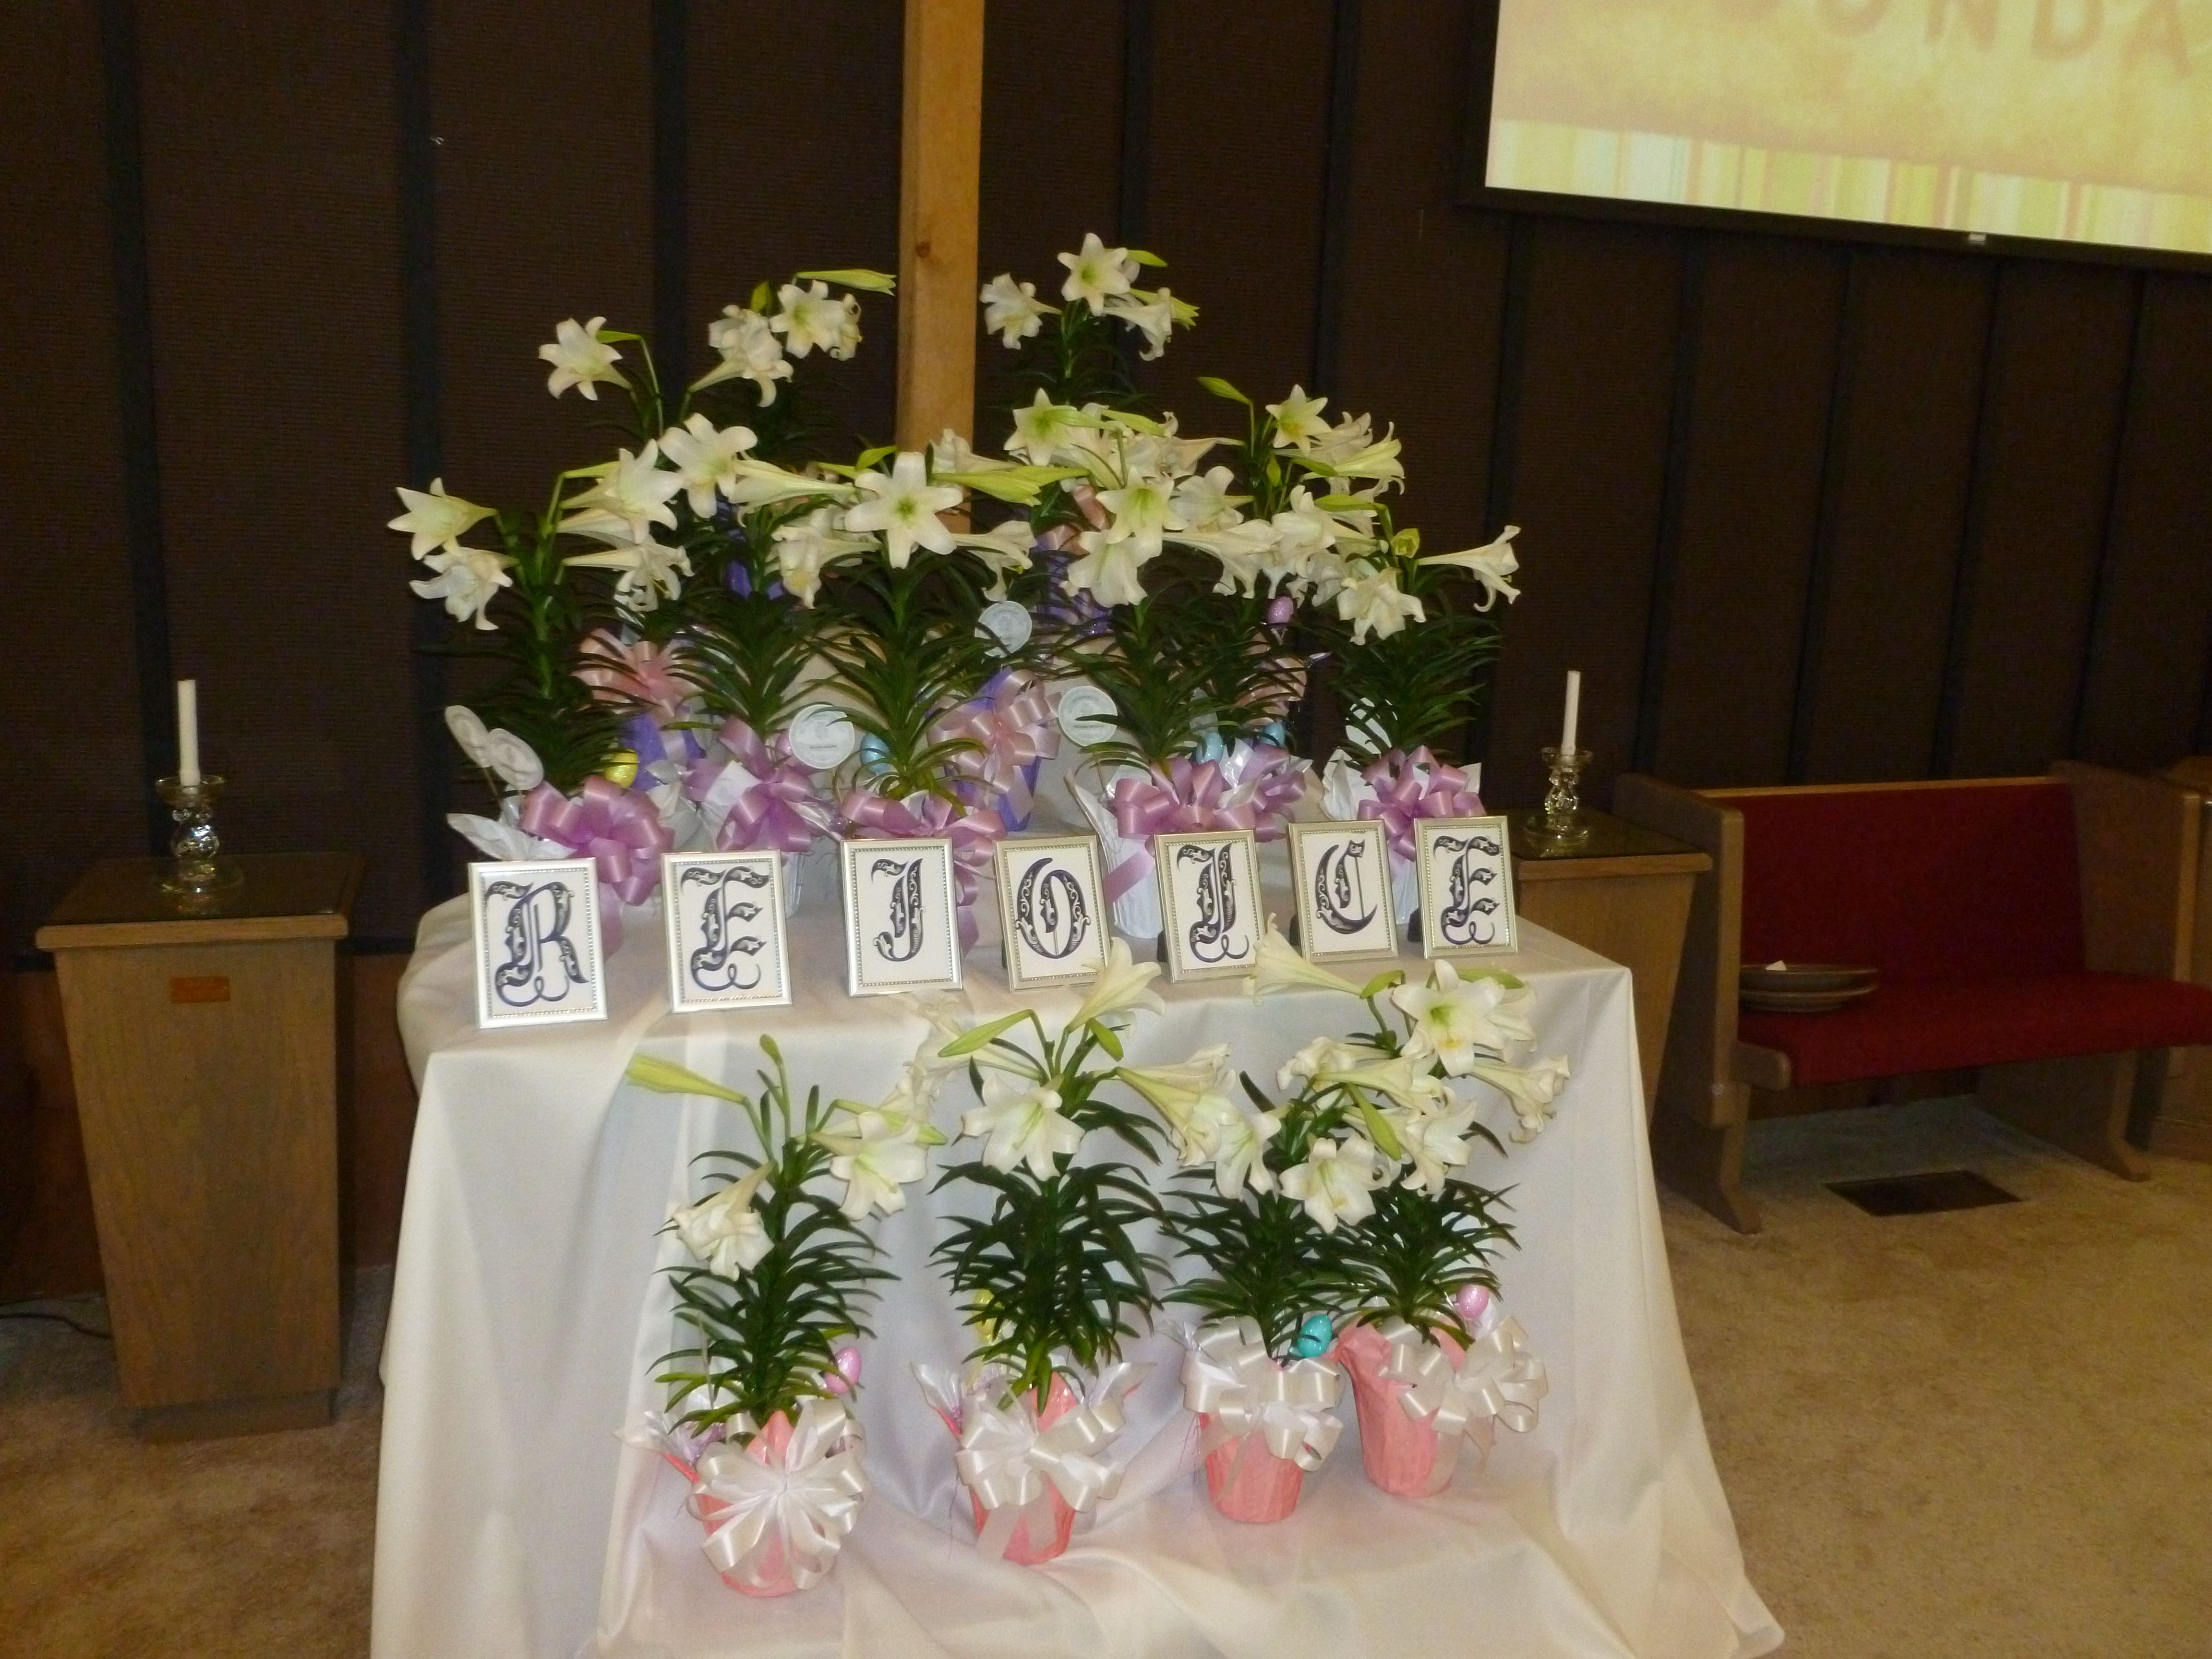 Easter altar at church print letters use cheap dollar store frames print letters use cheap dollar store frames easy to izmirmasajfo Choice Image